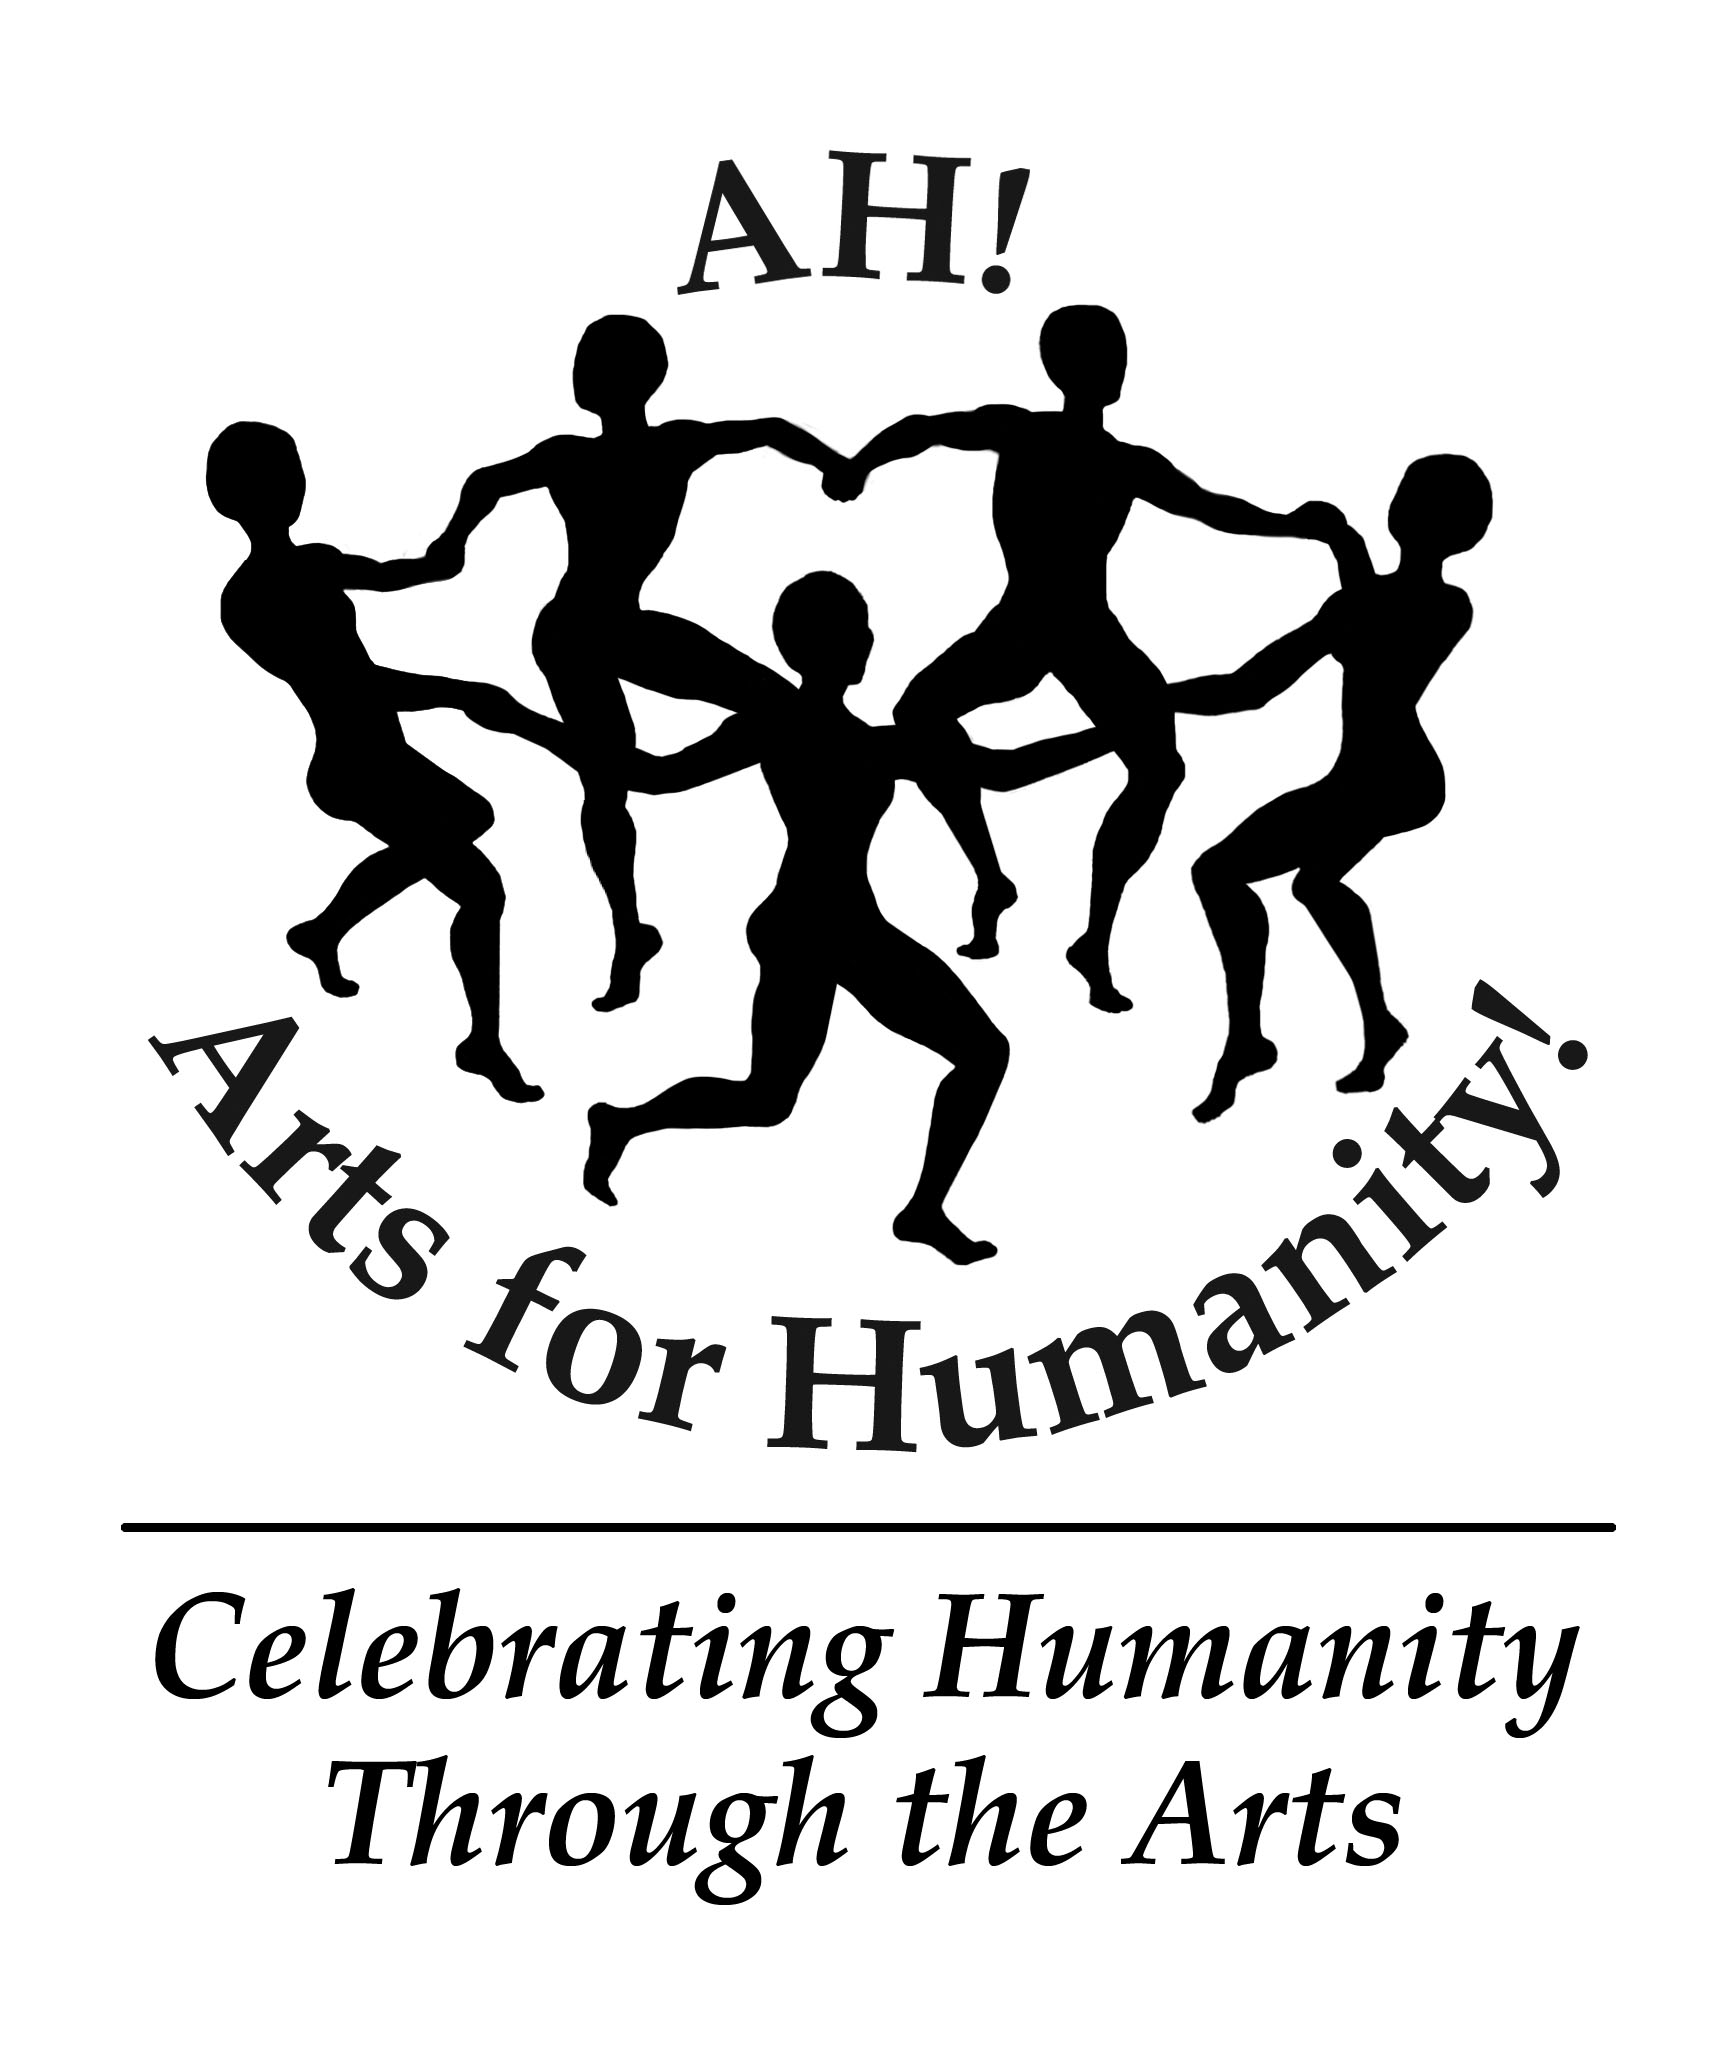 Arts for Humanity! seeks Program Administrator